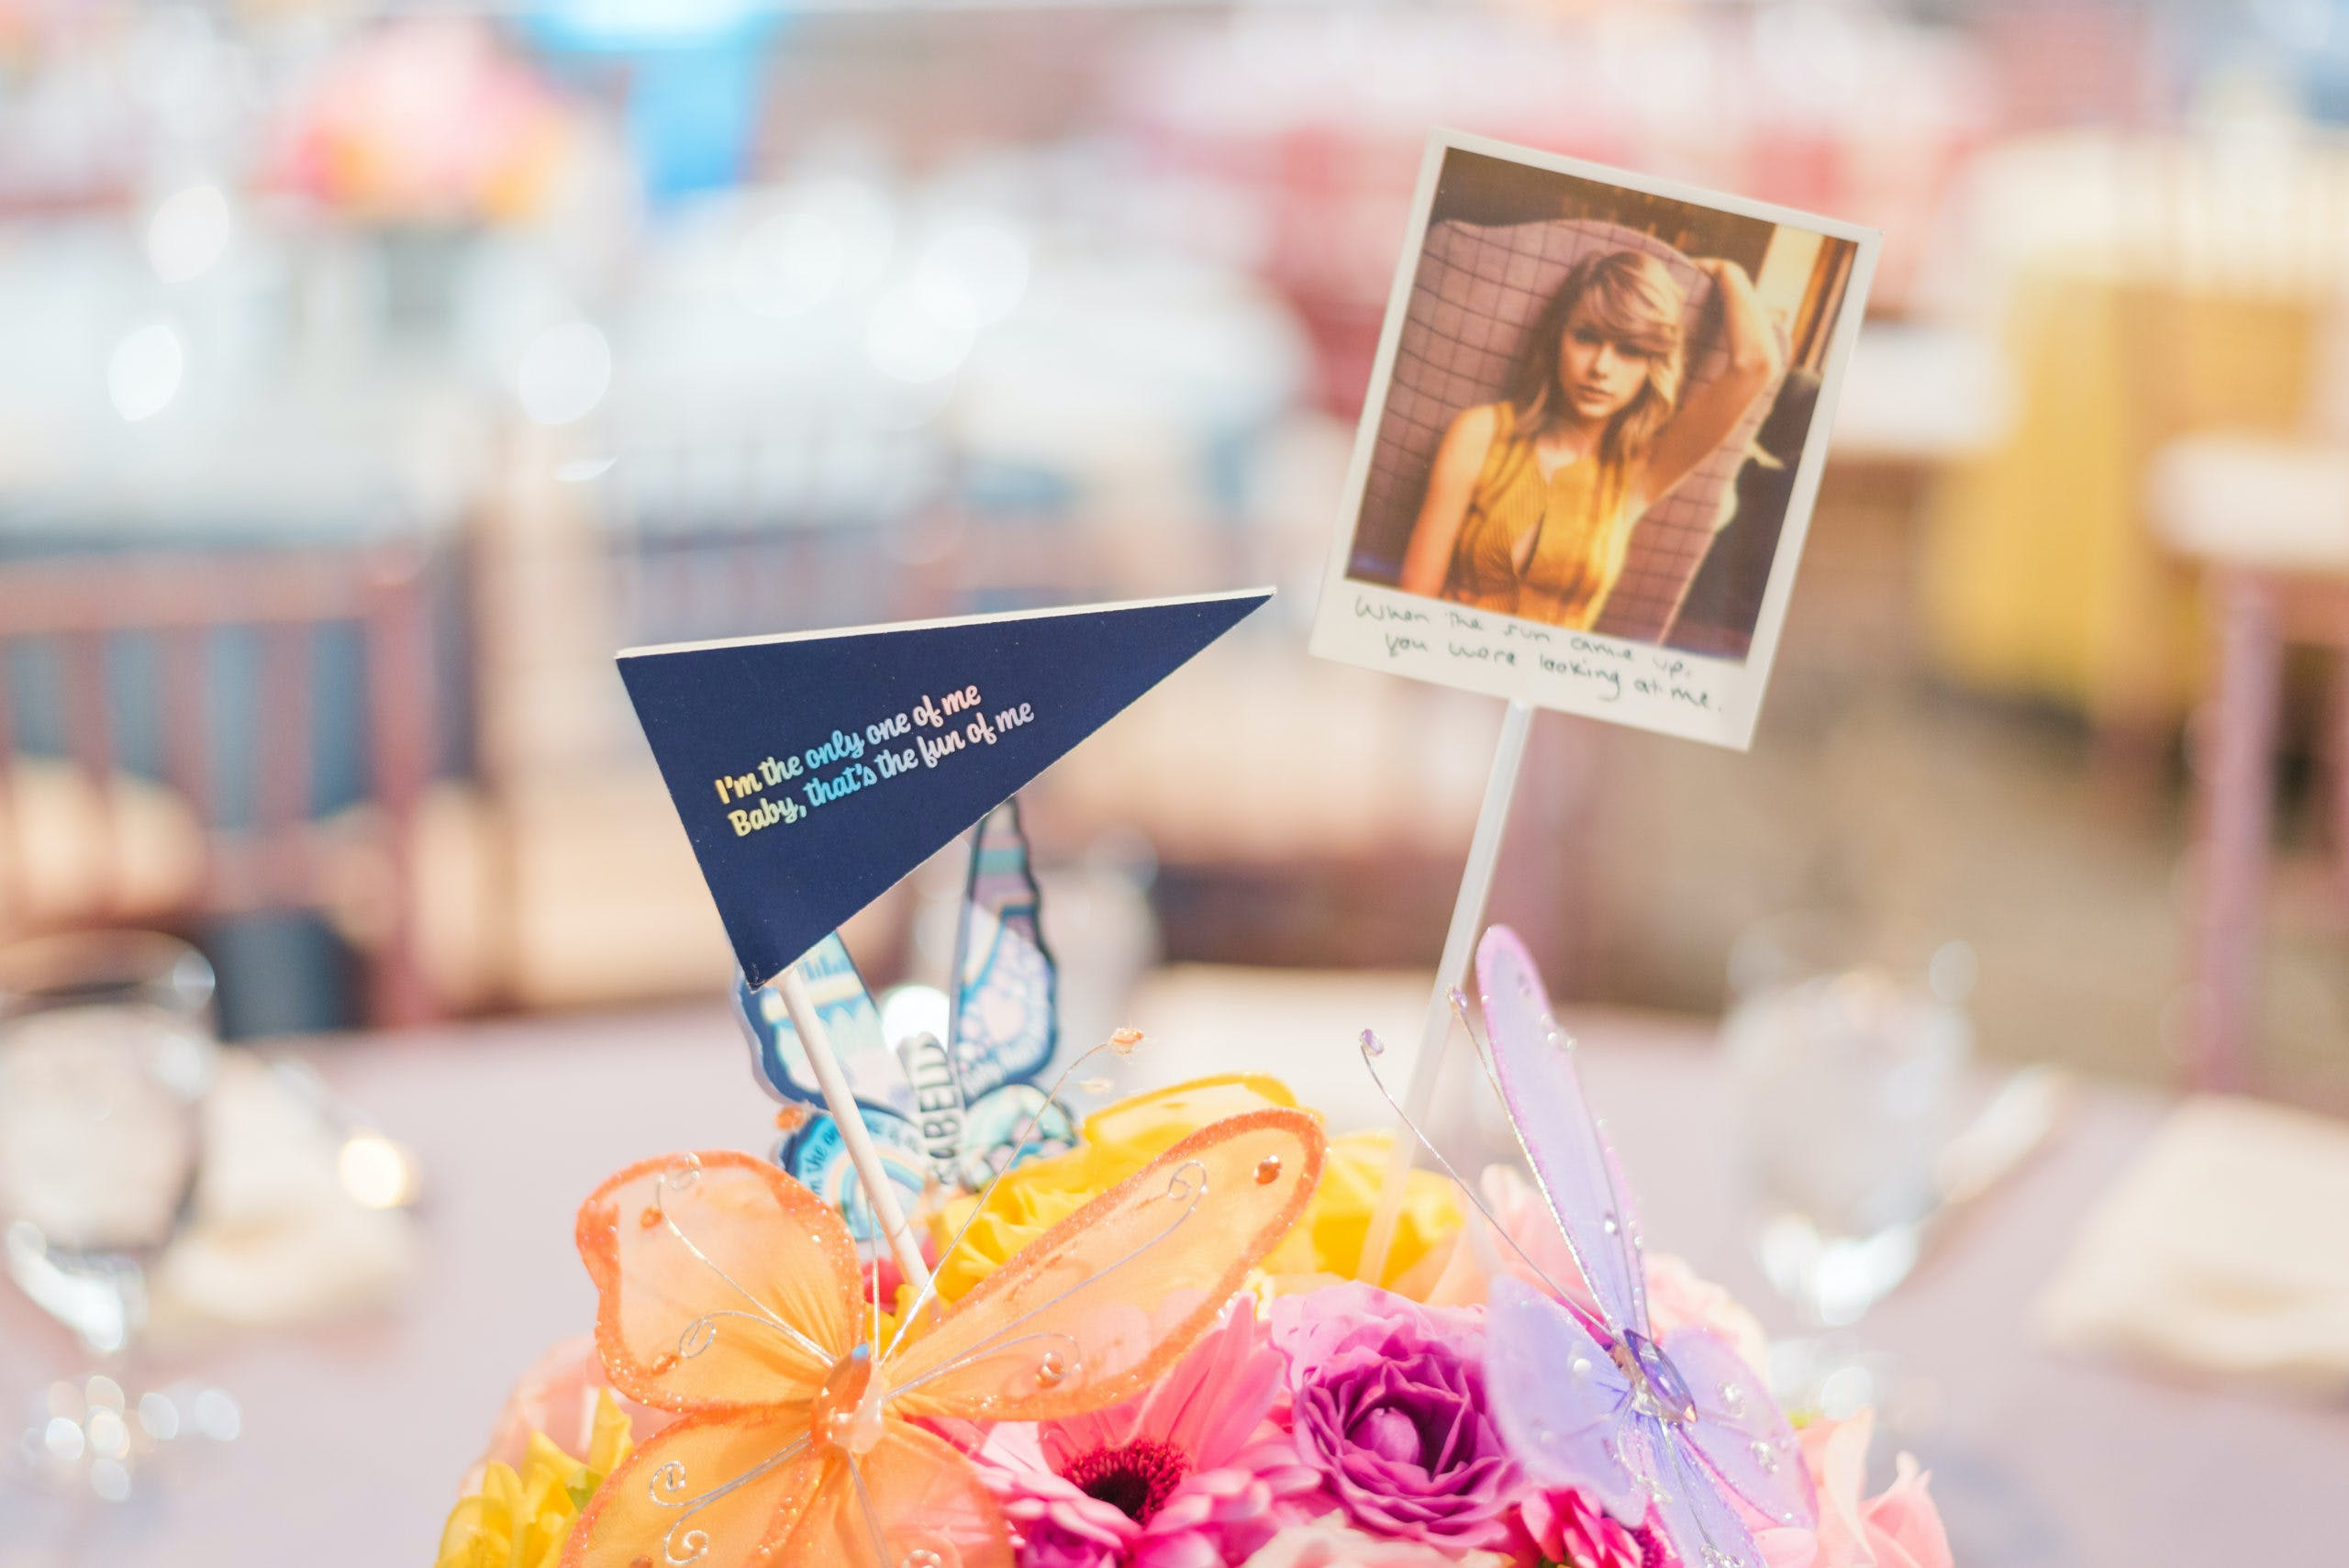 Taylor Swift-Themed Centerpiece With Butterfly Details at Quinceañera Party | PartySlate